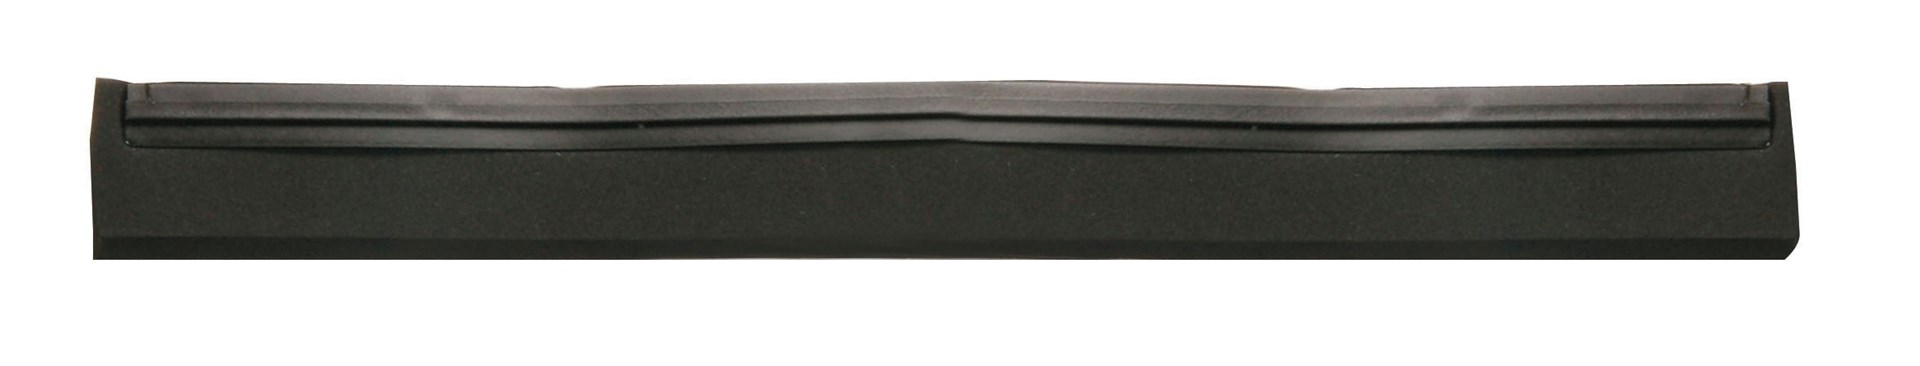 Productafbeelding DI Squeegee Rubber Black 40 2pc W1